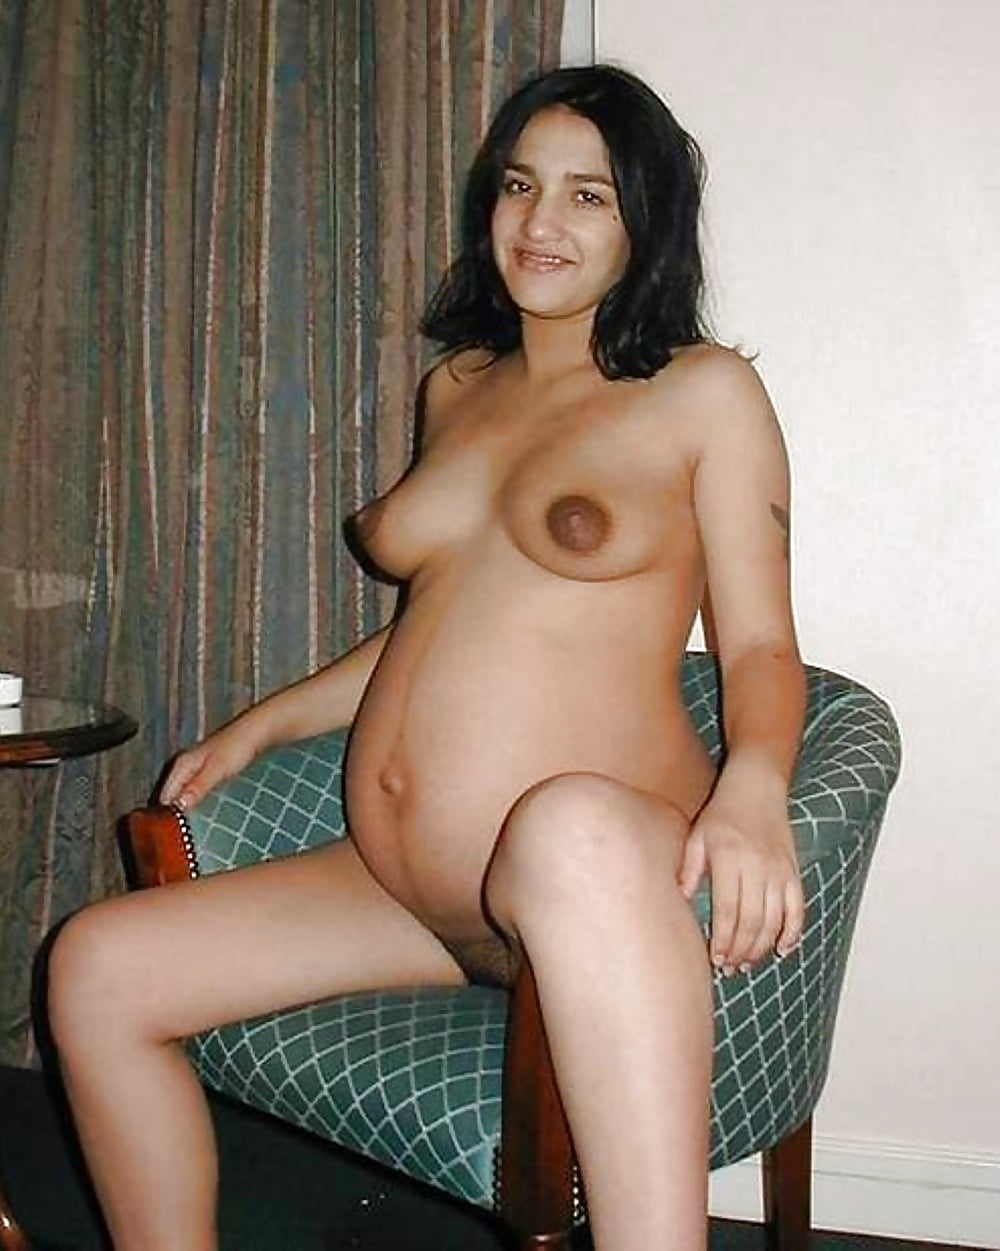 Nude pregnant indian woman, free naked girlpictures